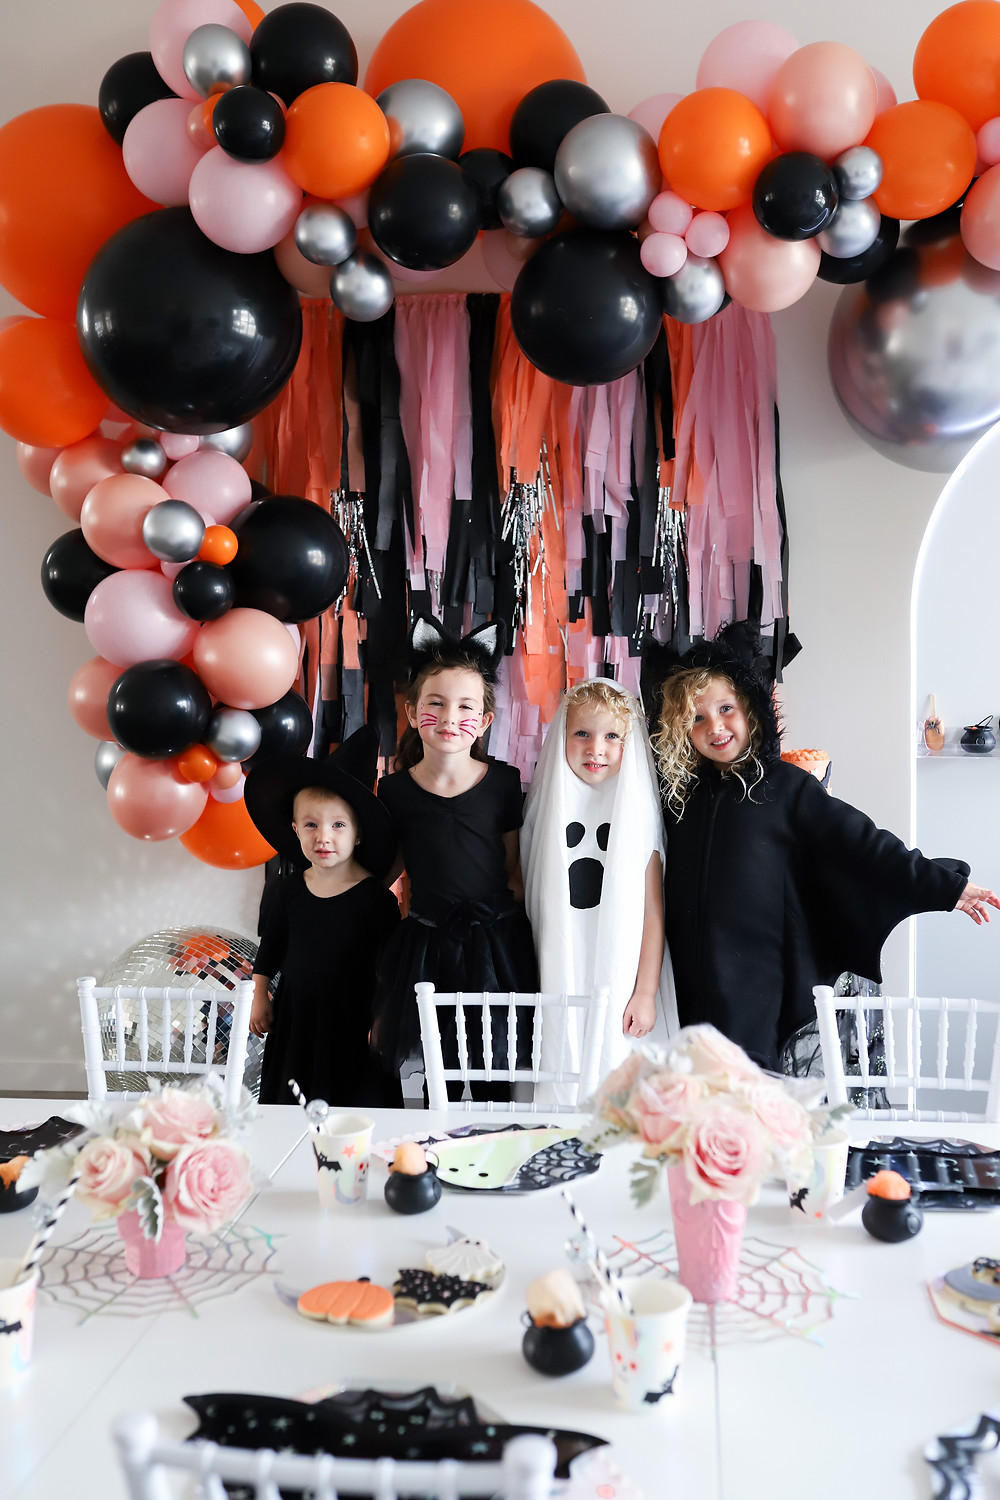 A Halloween party for kids with diy ghost, witch, and cat costumes standing in front of pink, orange, and black balloon streamers arched over the wall, as well as a metallic disco ball behind a white table decorated with pink roses and spooky decor.